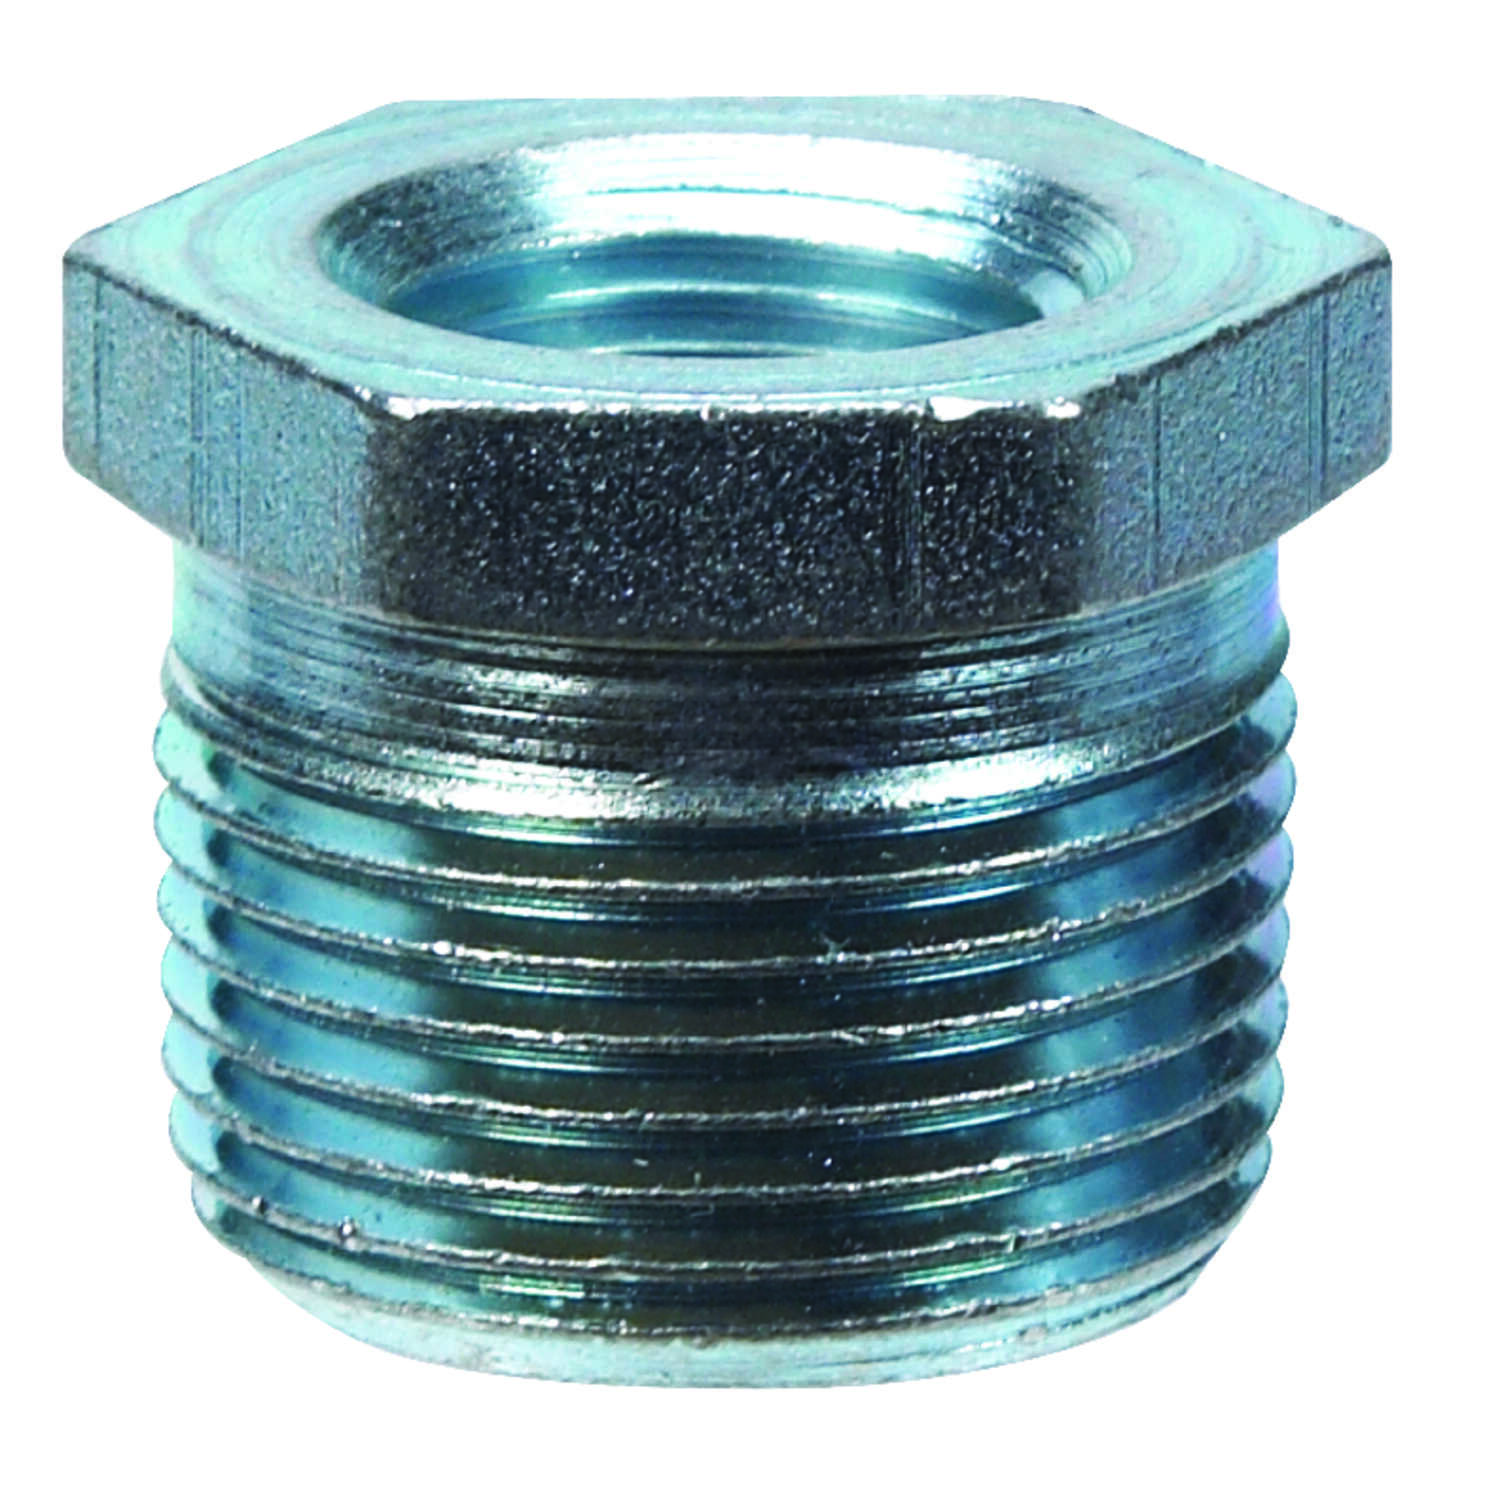 Billco  1/4 in. MPT  1/8 in. Dia. MPT  Galvanized Steel  Hex Bushing